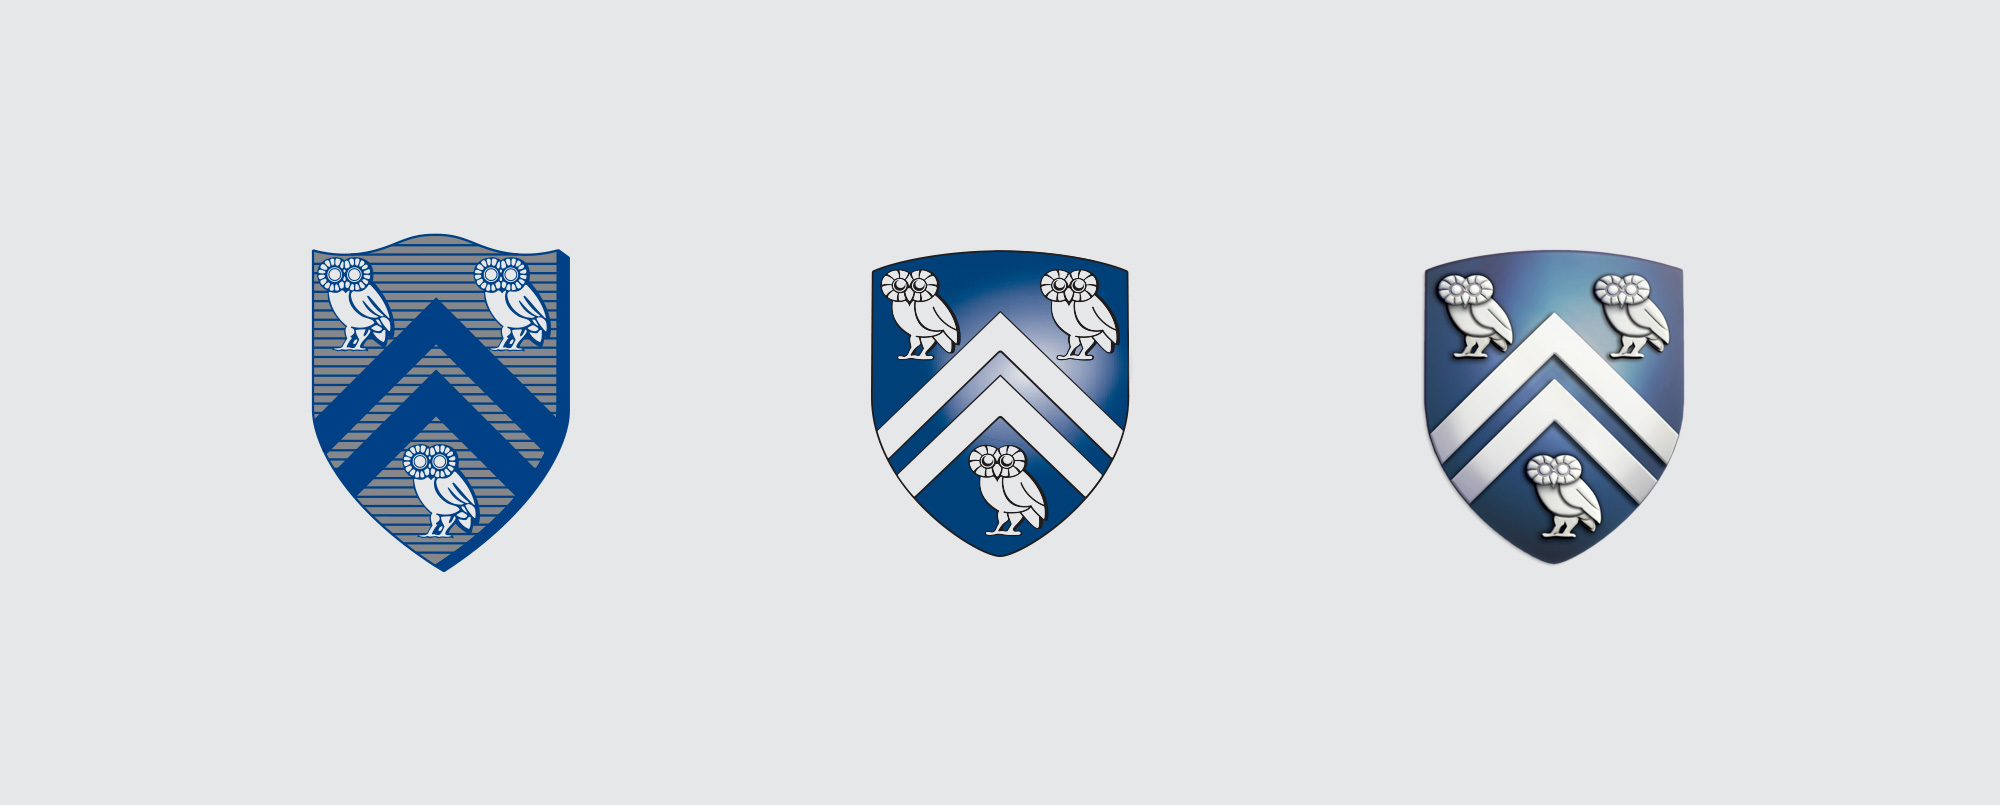 New Logo and Identity for Rice University by Hawkeye